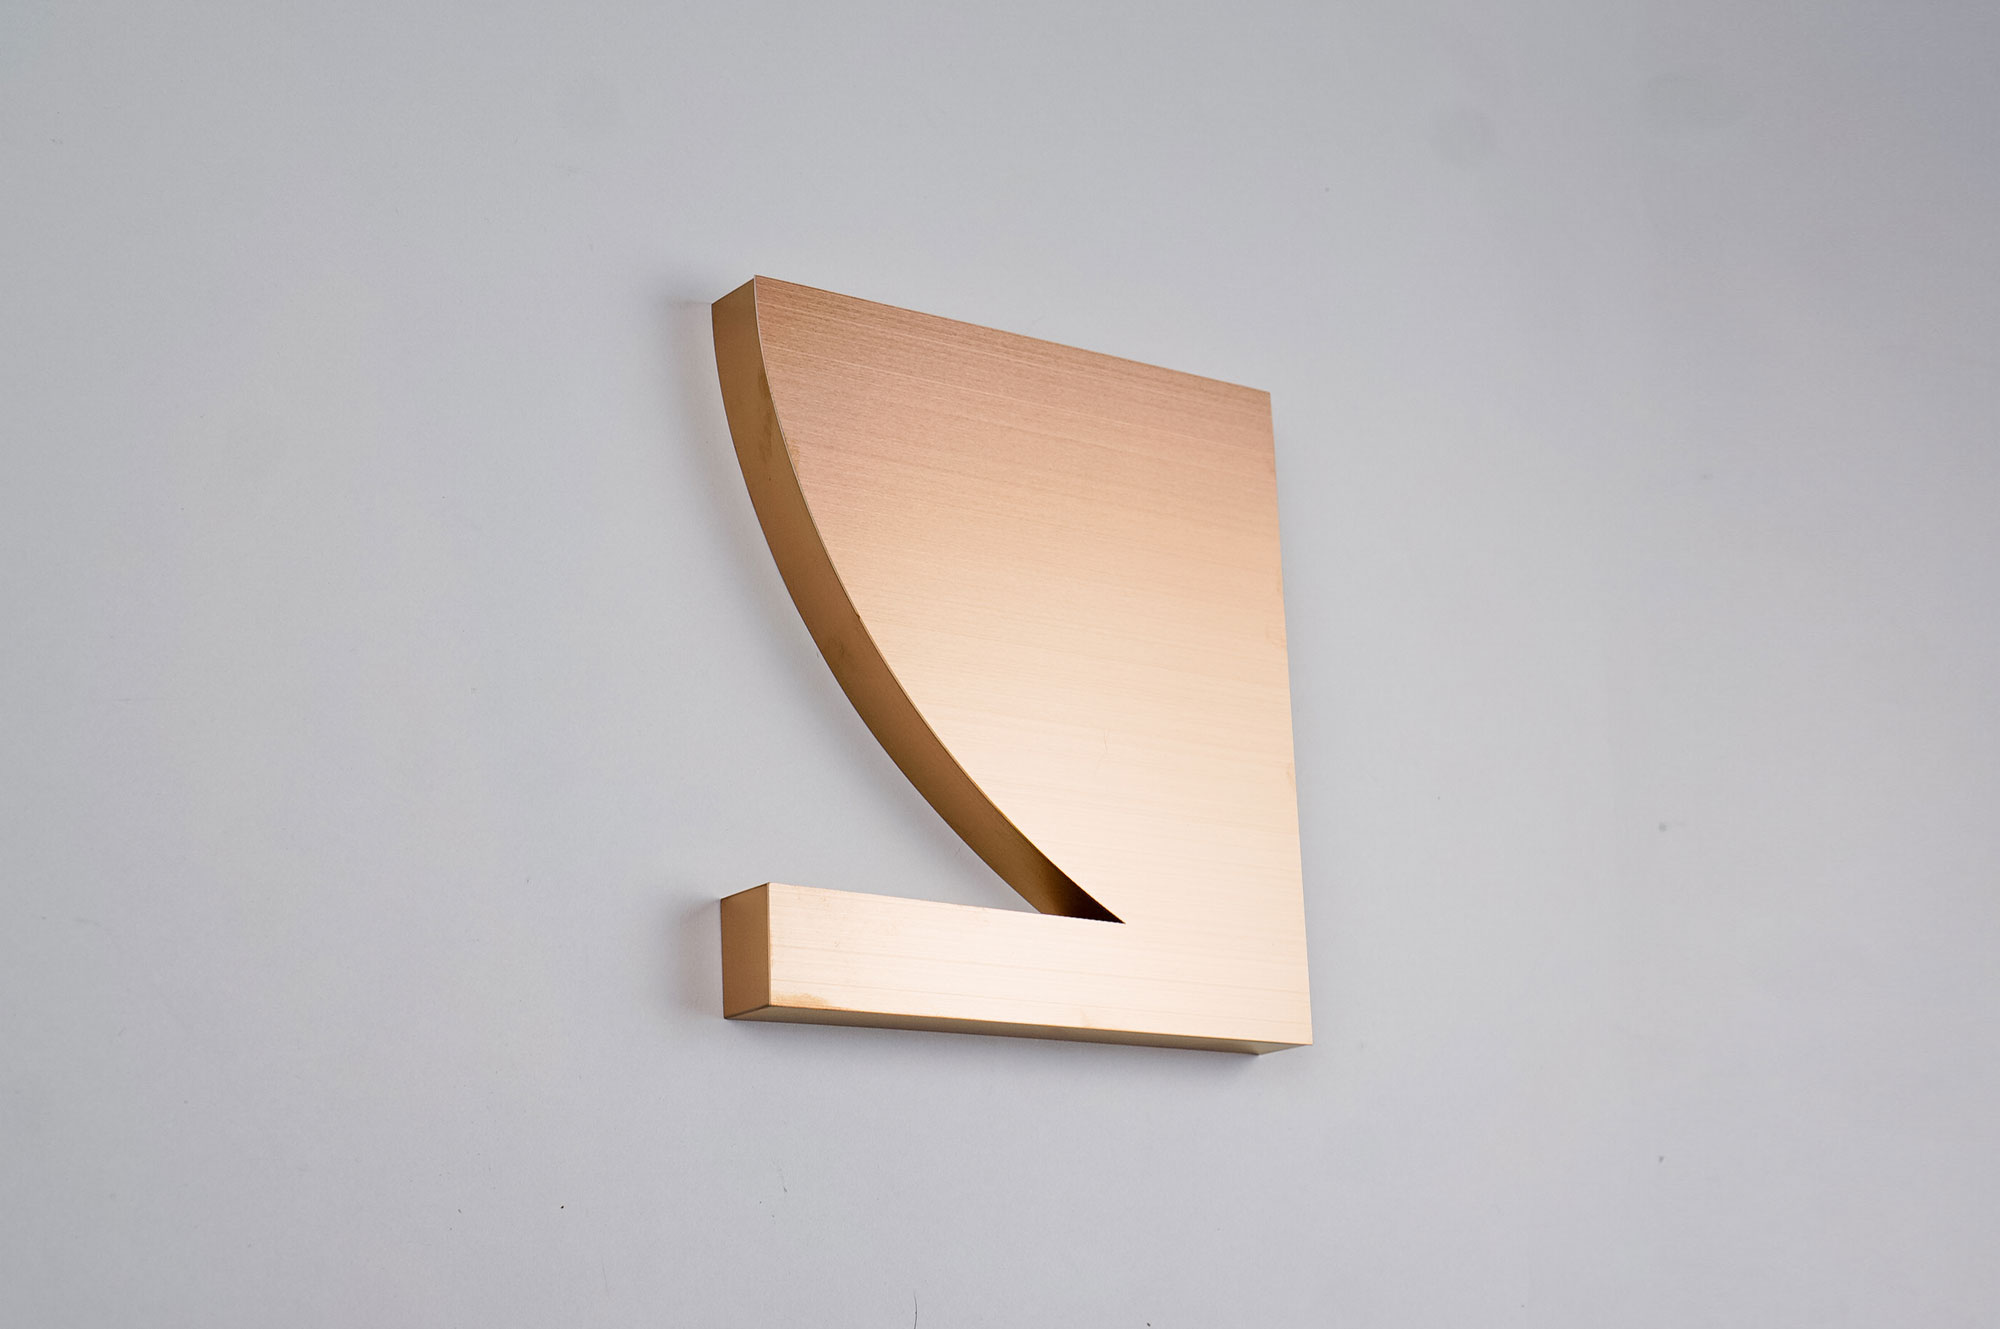 Brushed copper style cutout logo for Bzippy & Co, a design line by LA-based artist Bari Ziperstein.